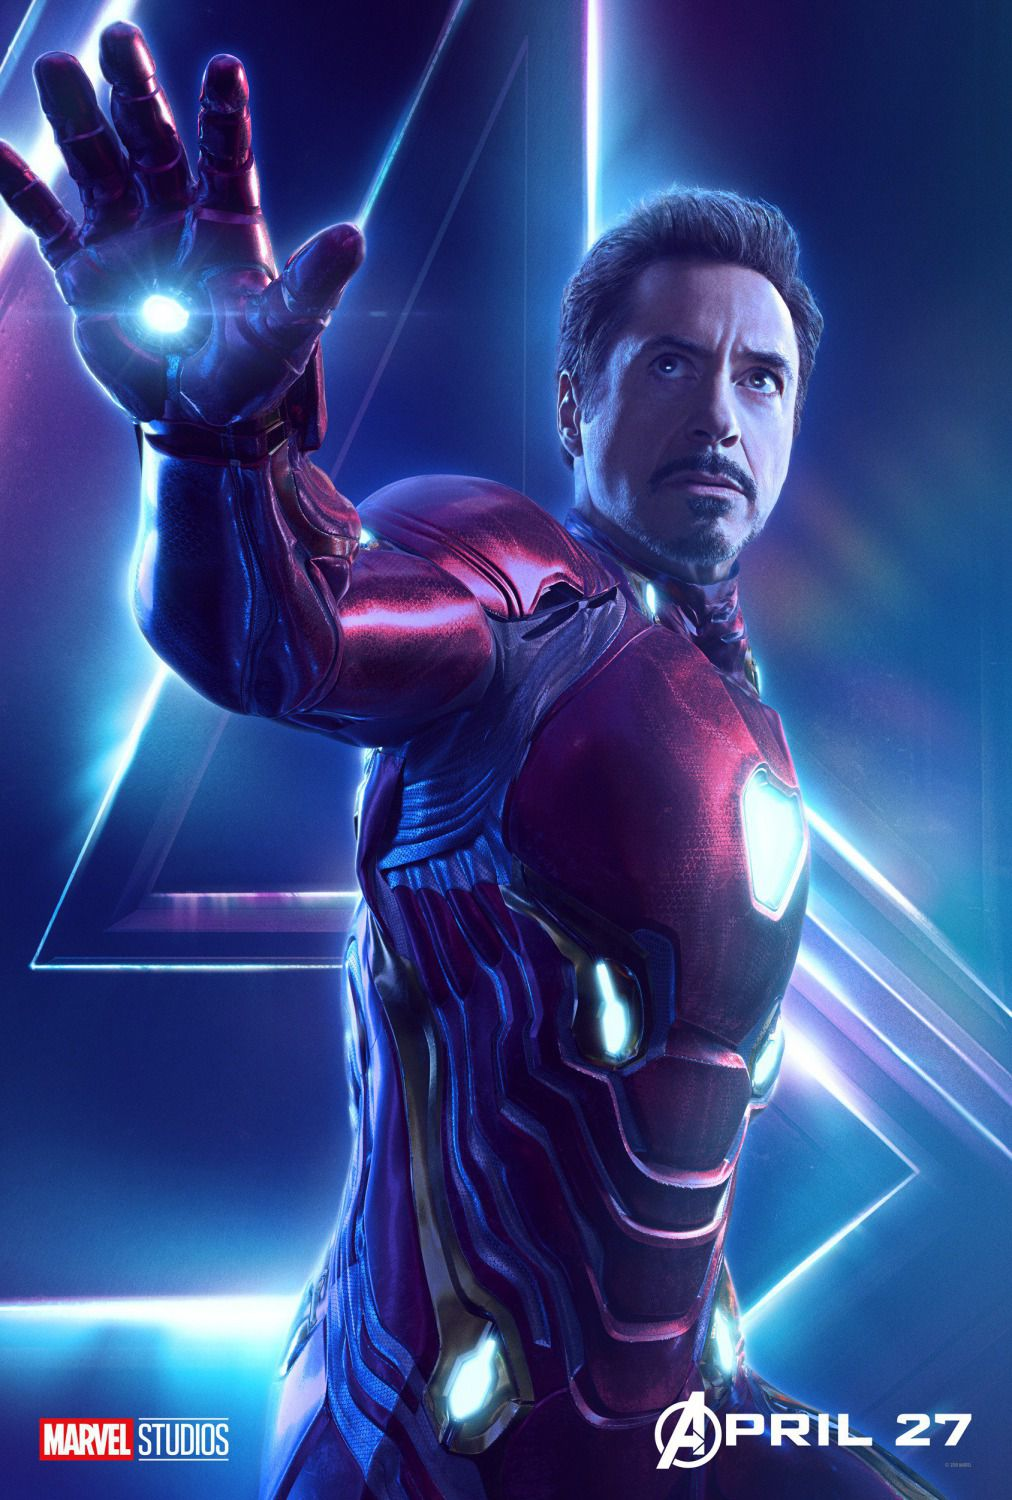 Robert Downey Jr. - Tony Stark - Iron Man